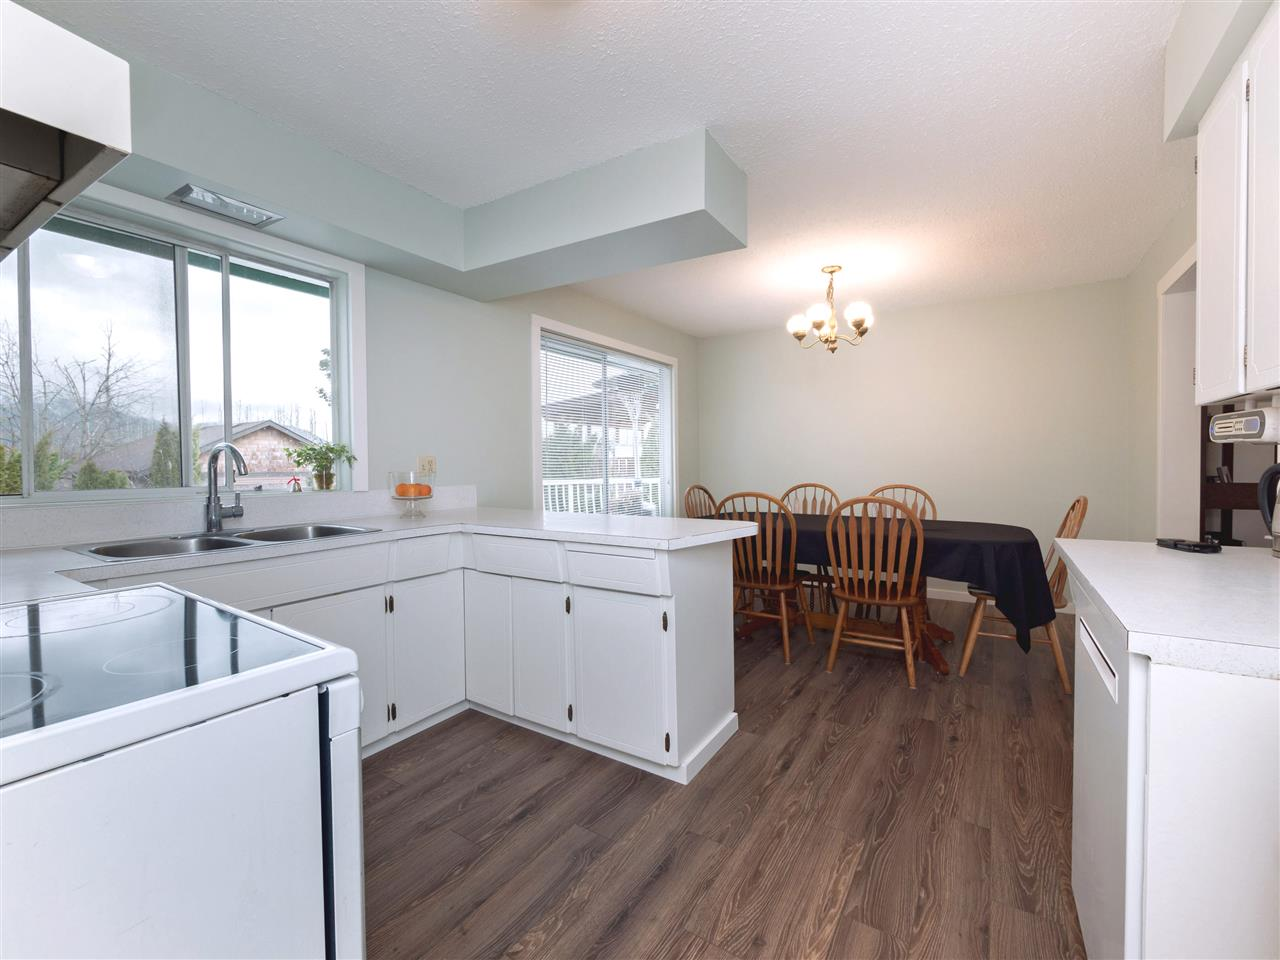 Photo 10: Photos: 33131 CHERRY Avenue in Mission: Mission BC House for sale : MLS® # R2236875